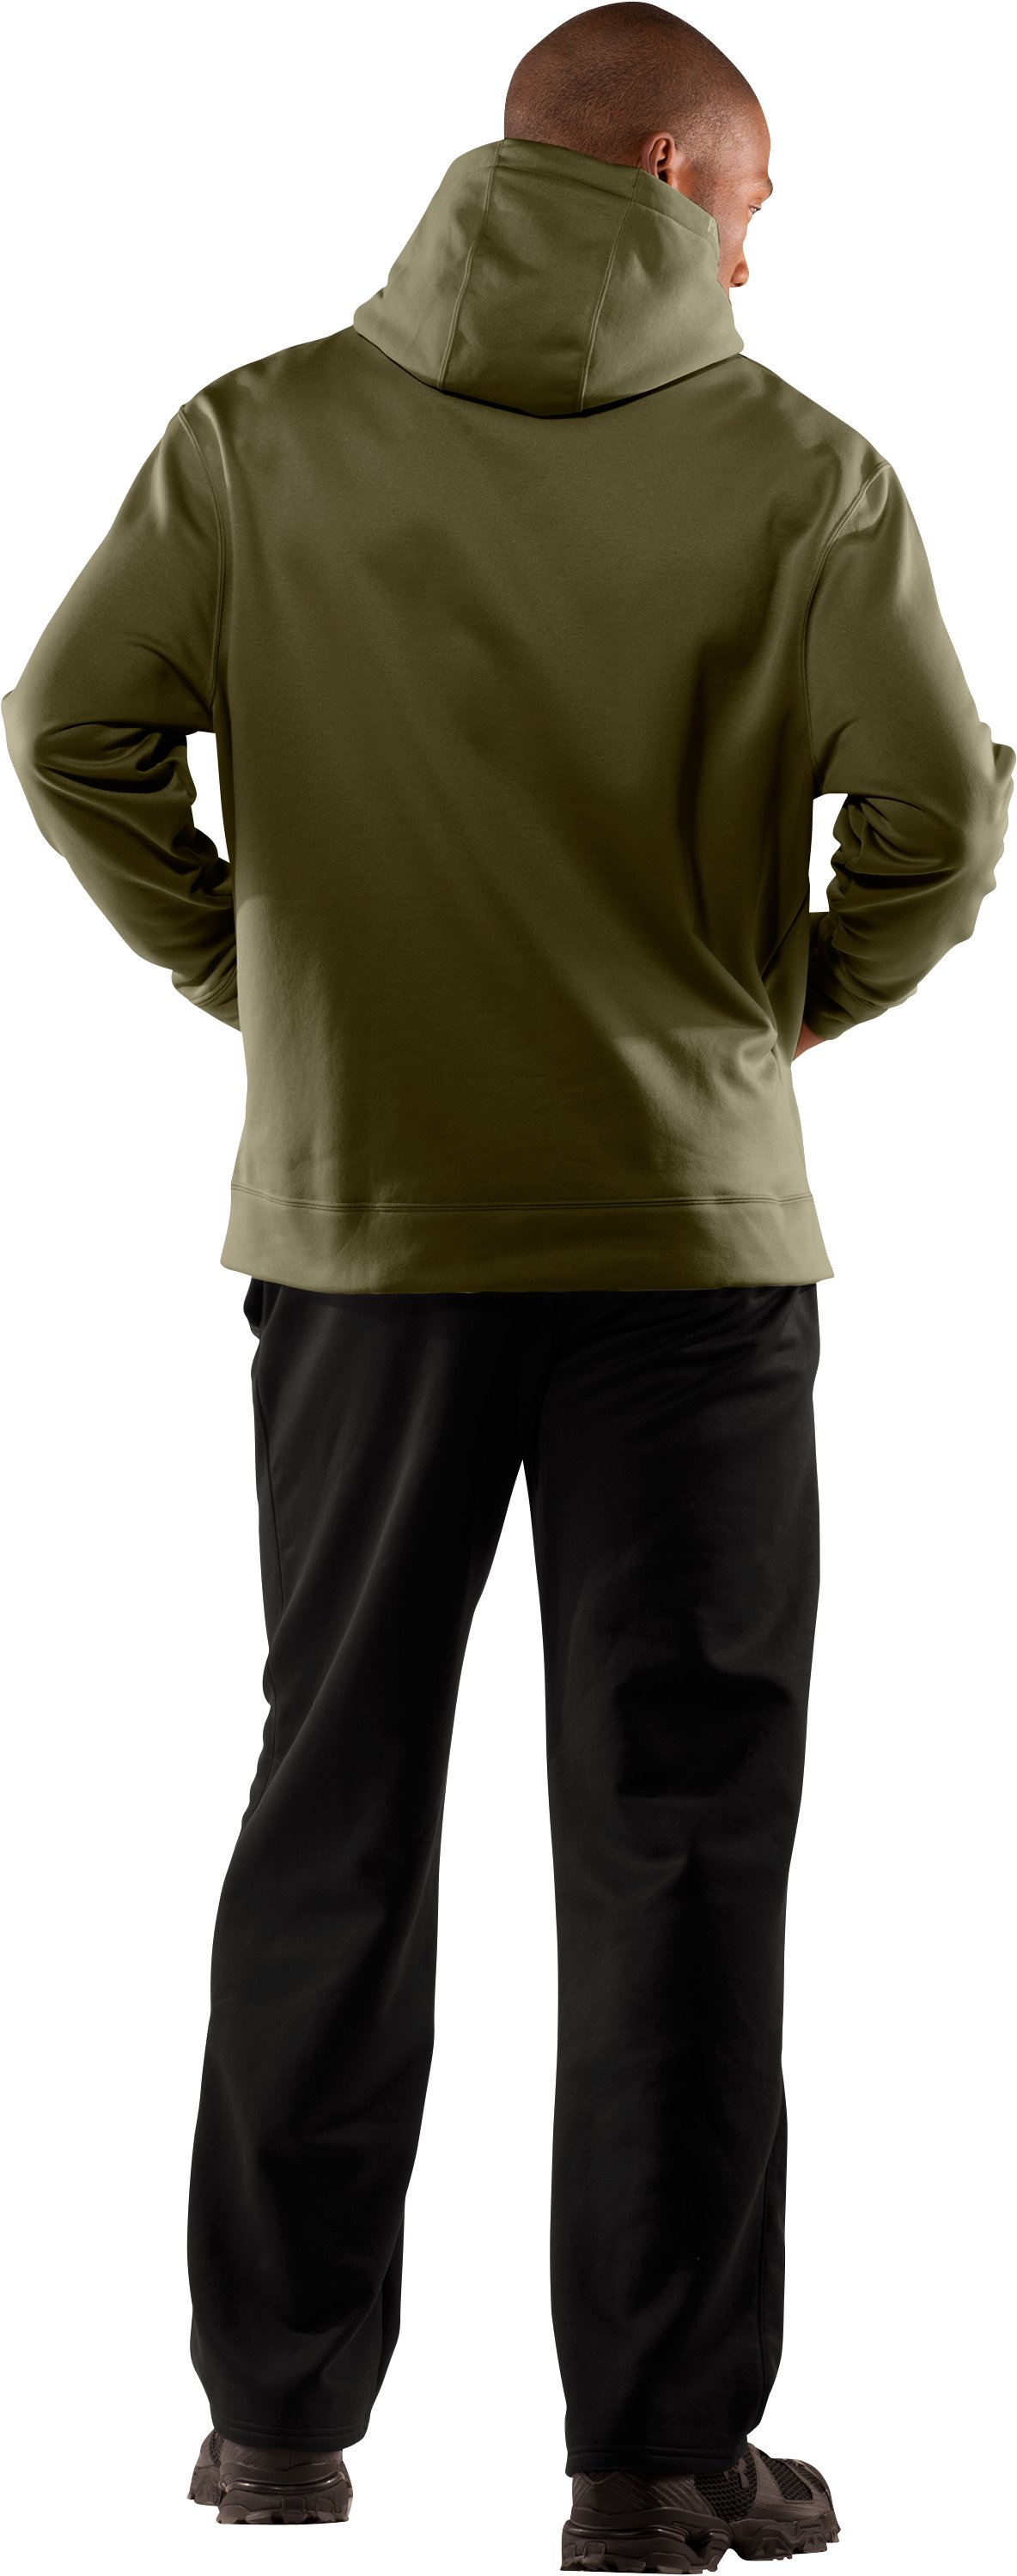 Men's Big Flag Logo Tackle Twill Fleece Hoodie, Marine OD Green, Back